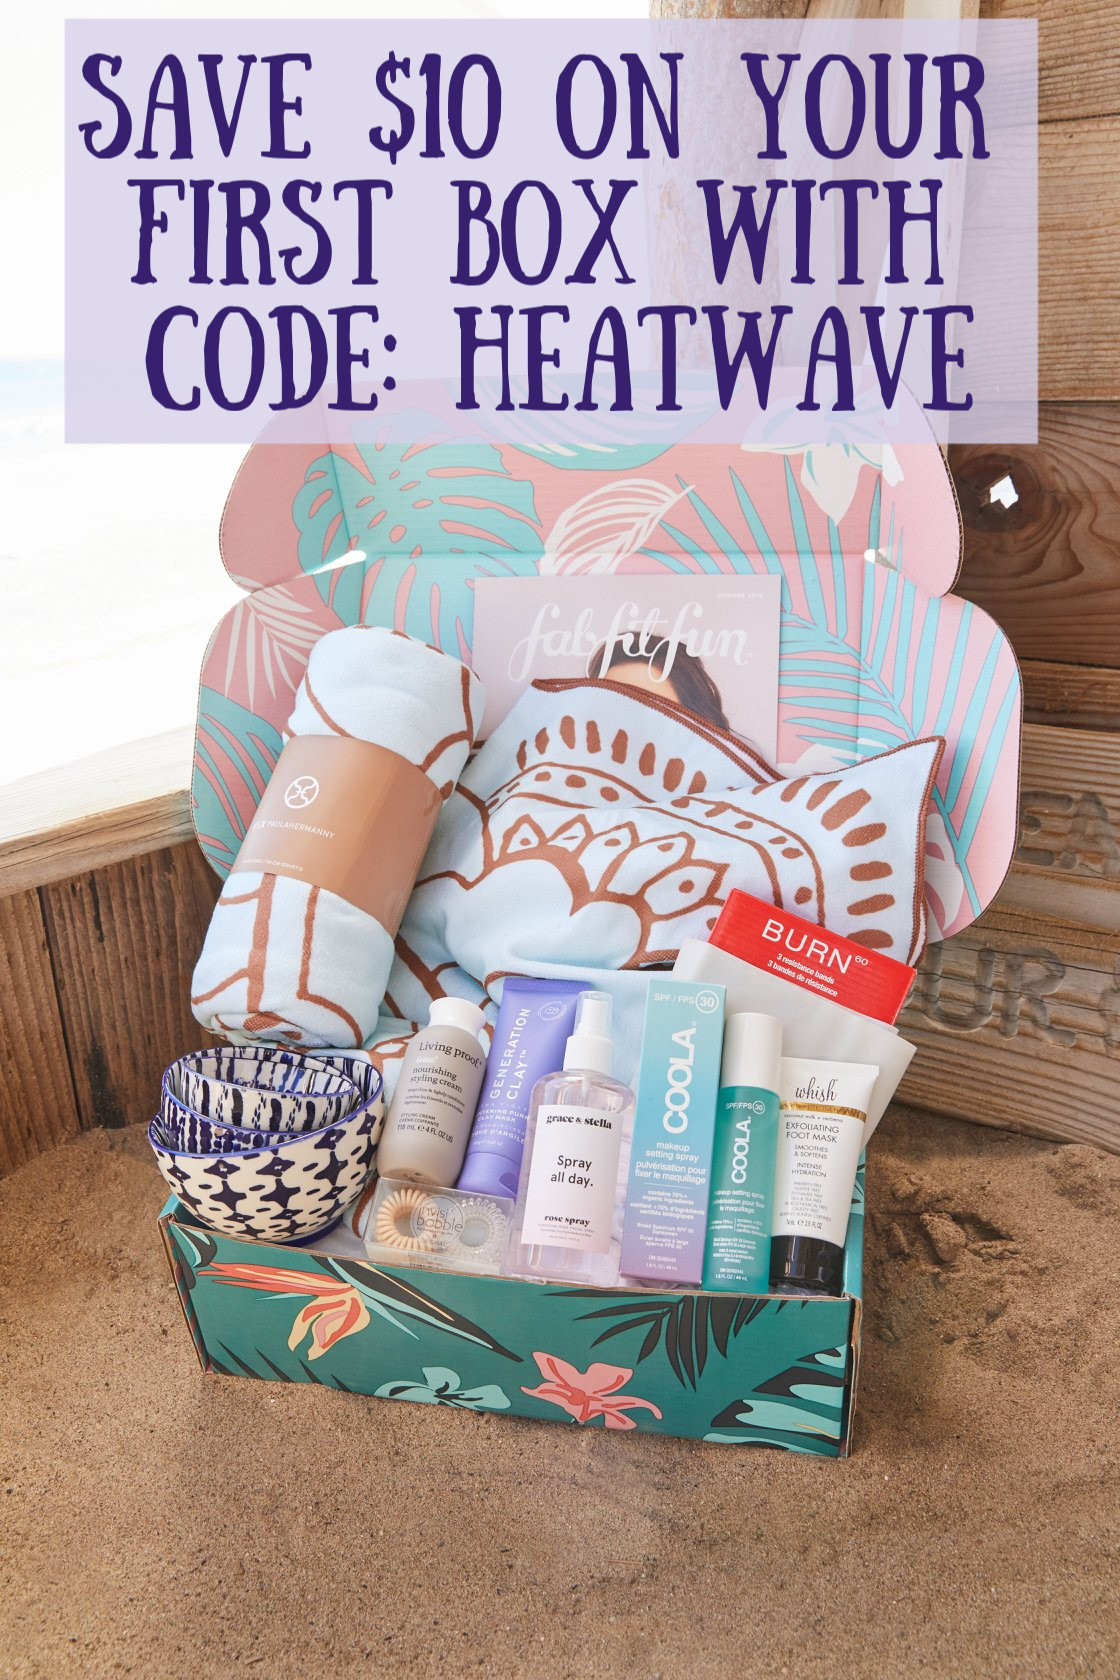 FabFitFun Summer Box has arrived! Save $10 on your first box worth over $200 with code Heatwave.